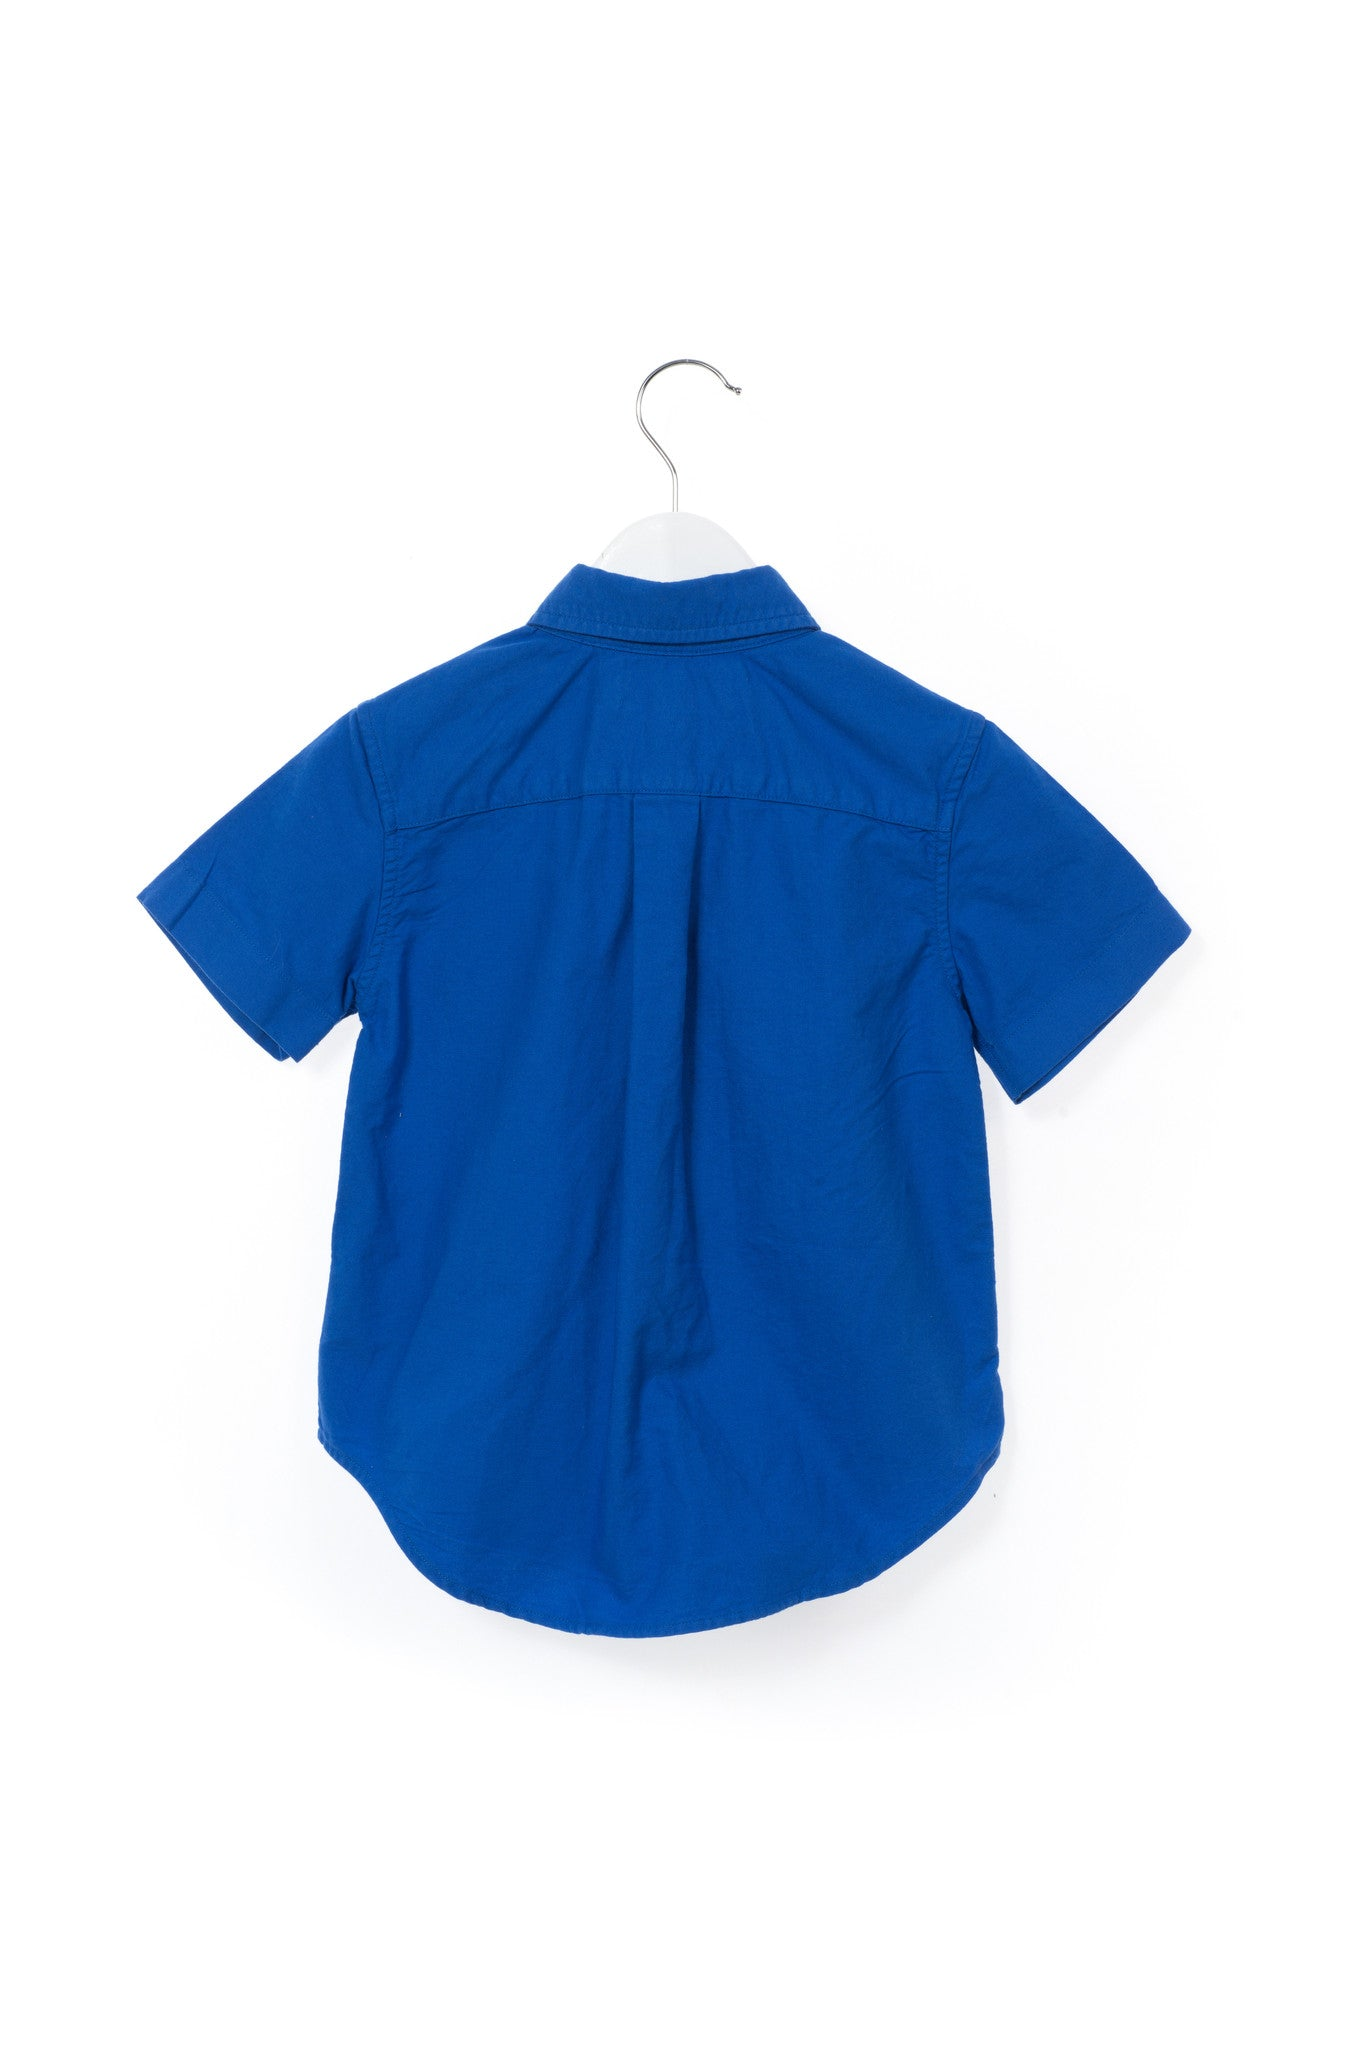 10001155 Polo Ralph Lauren Kids~Shirt 3T at Retykle